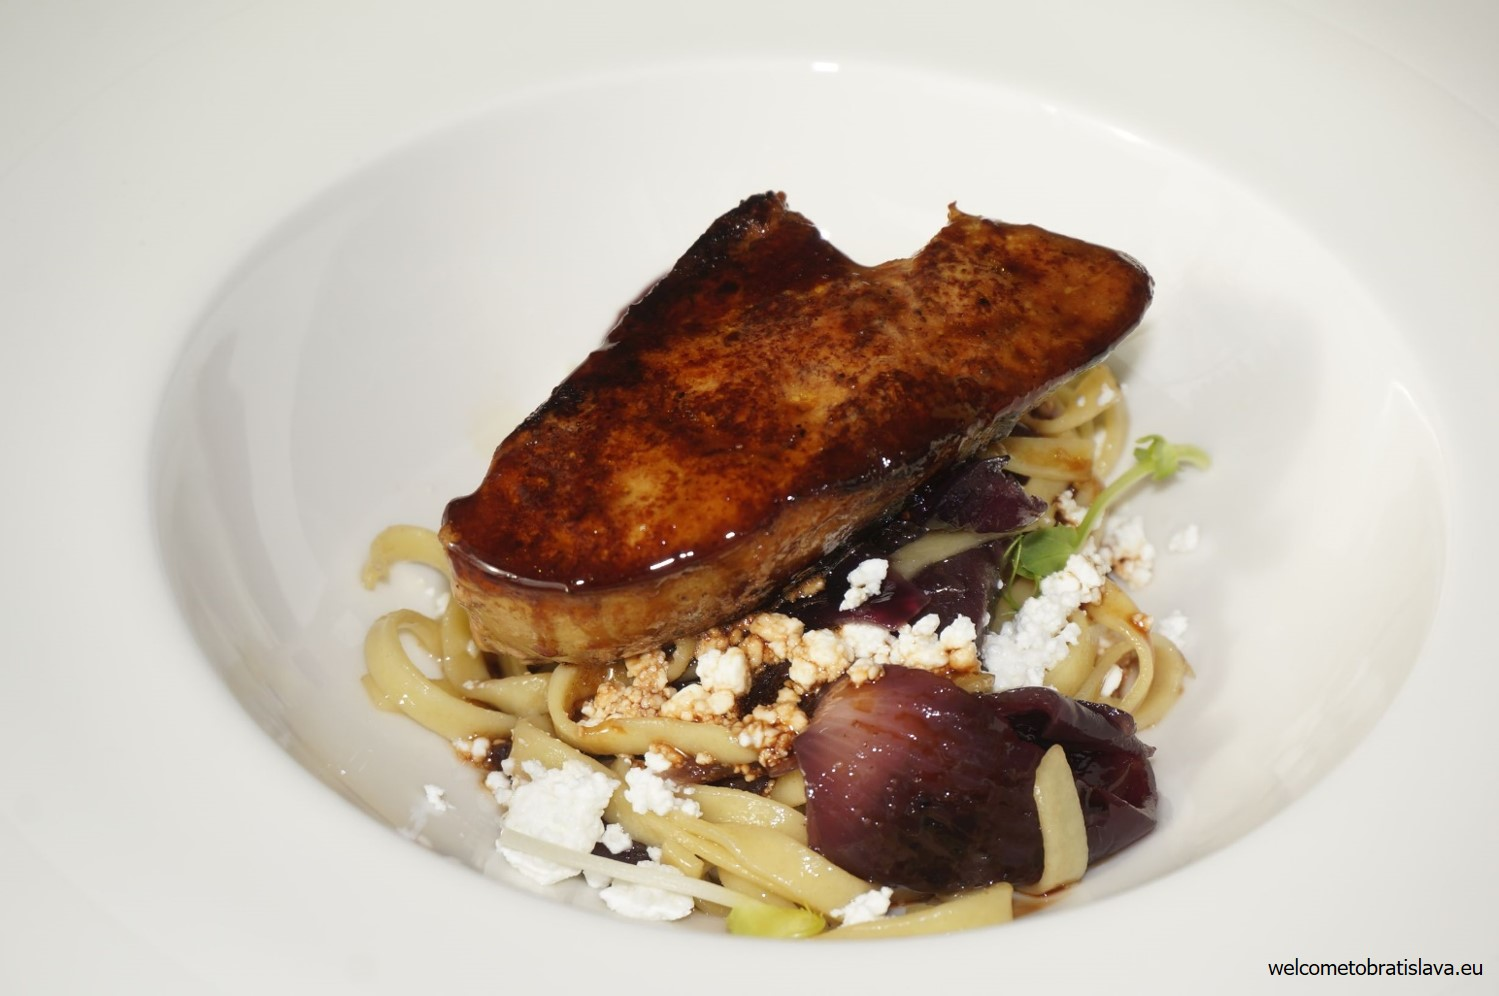 Grilled duck foie gras, curd cheese tagliatelle with caramelized shallot and thyme sauce